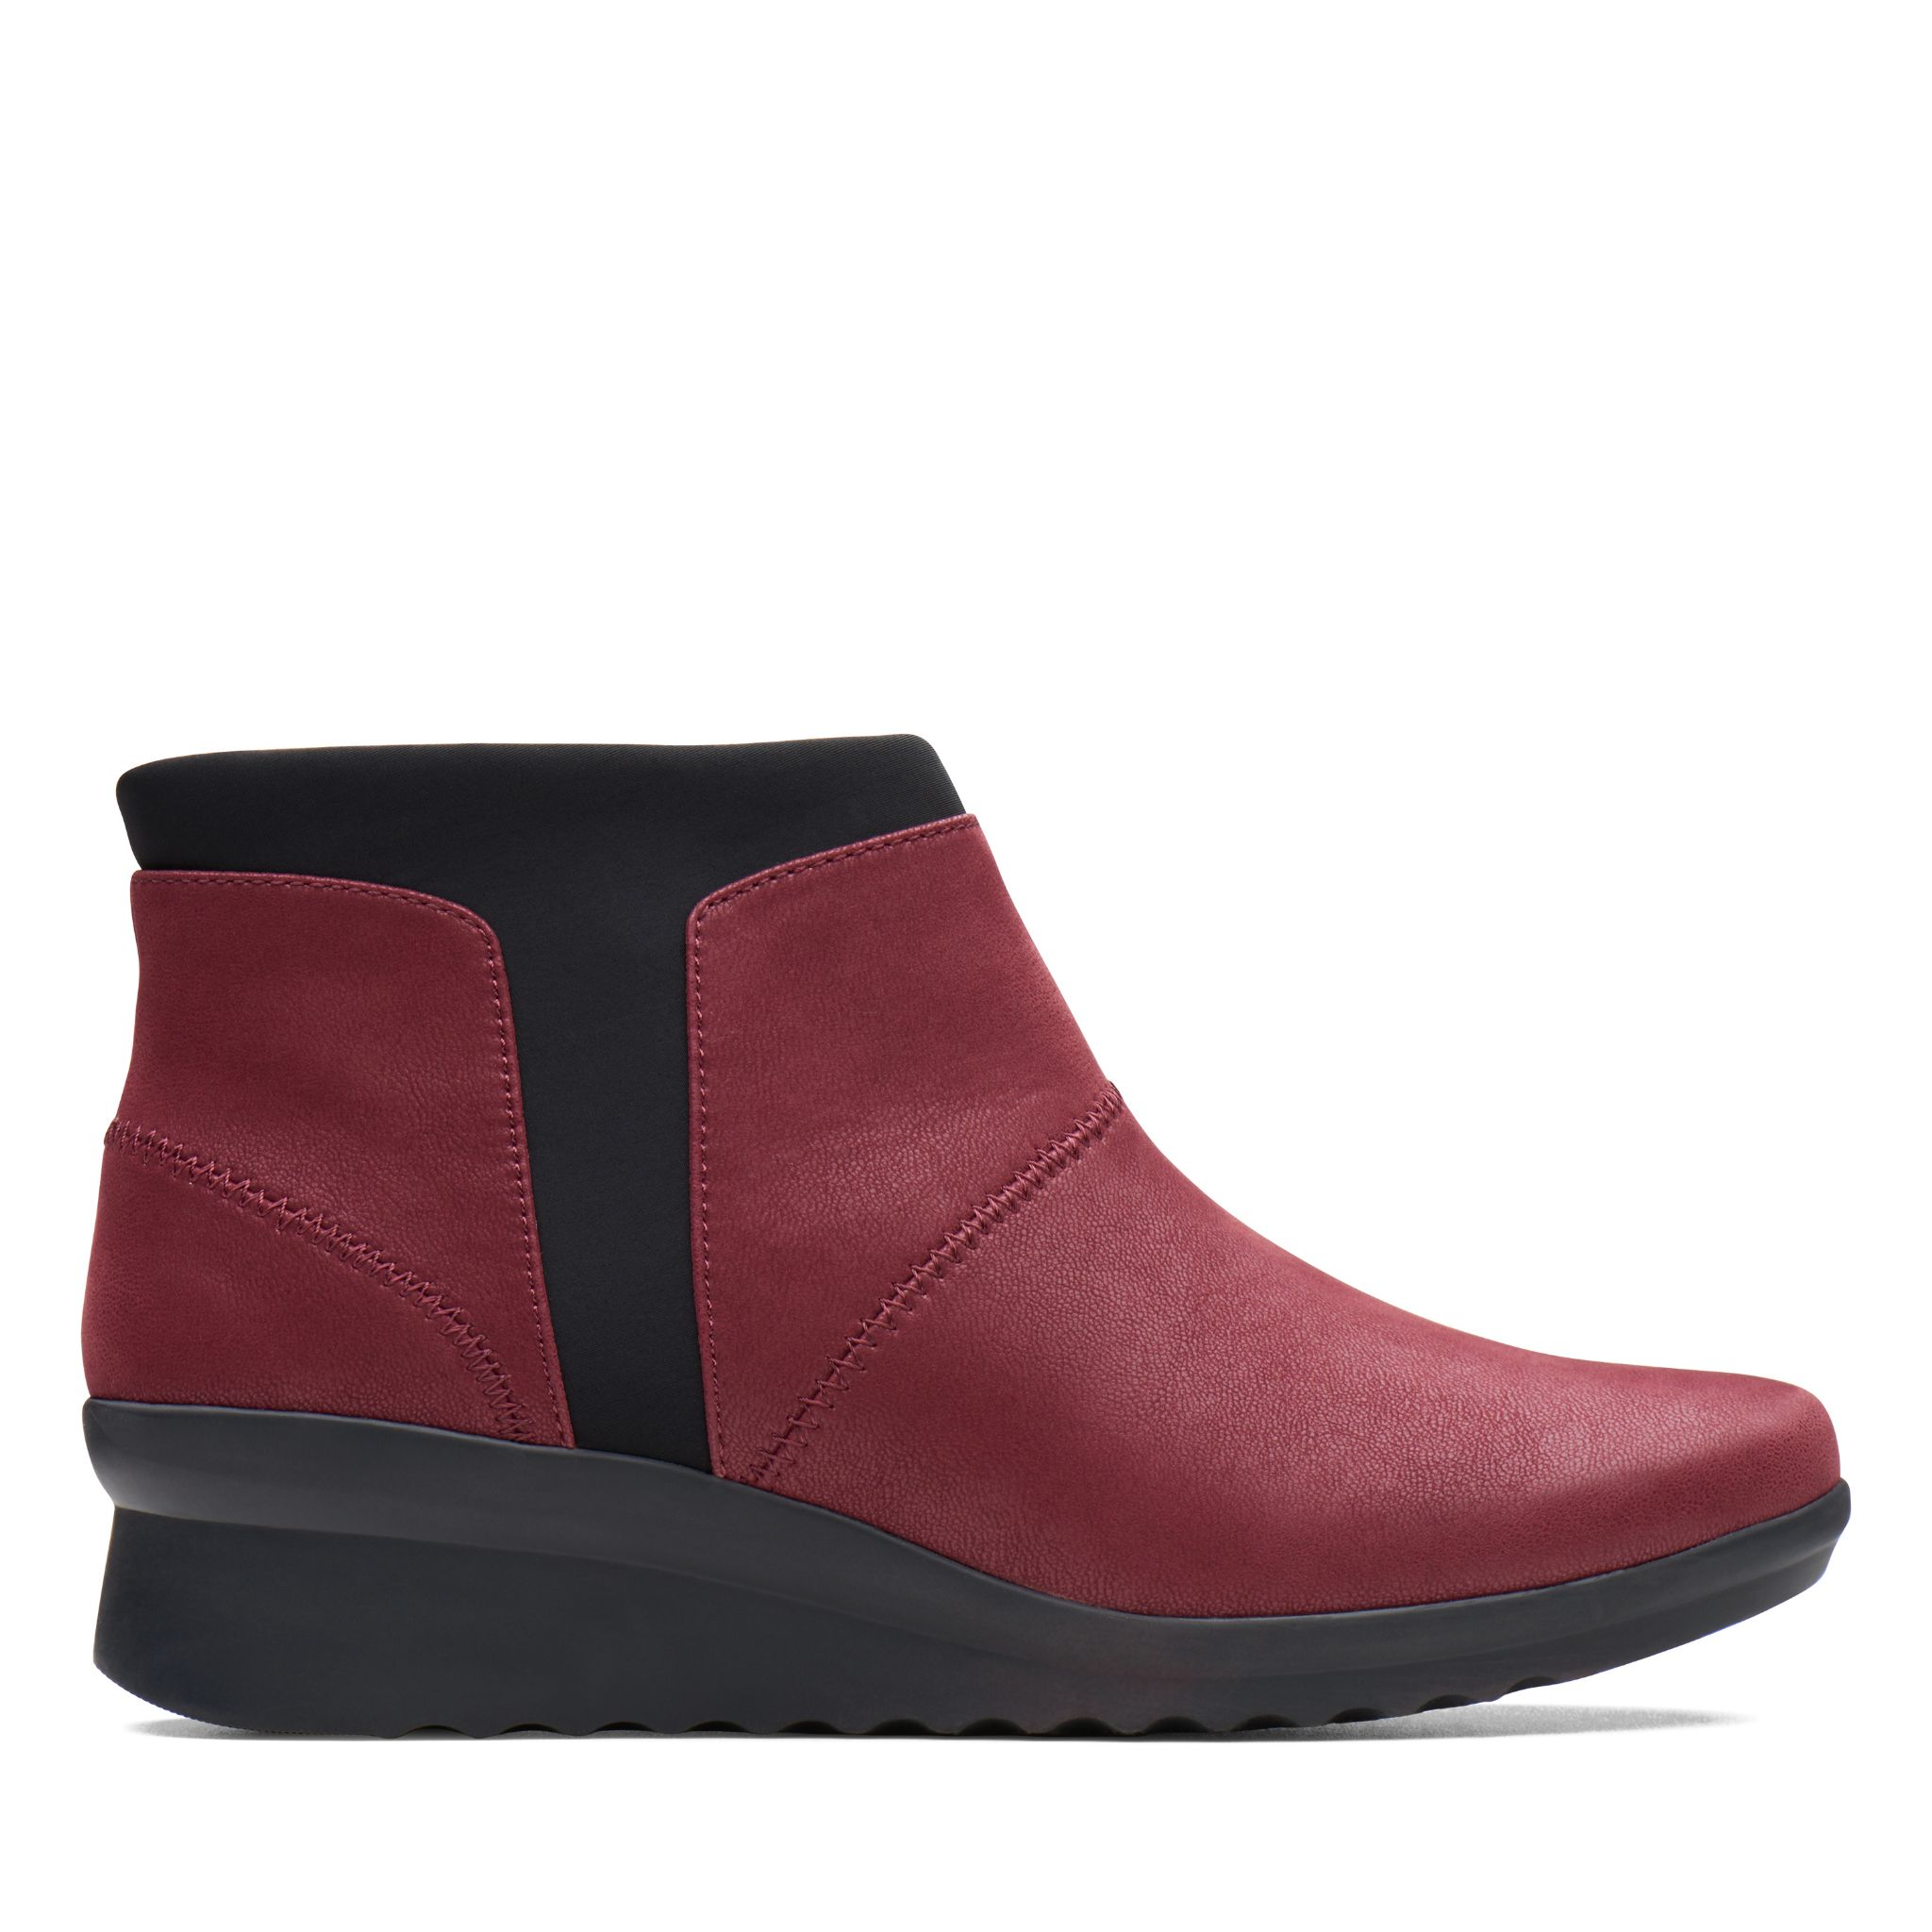 a5db4343bace Clarks Caddell Sloane Burgundy Womens Boots